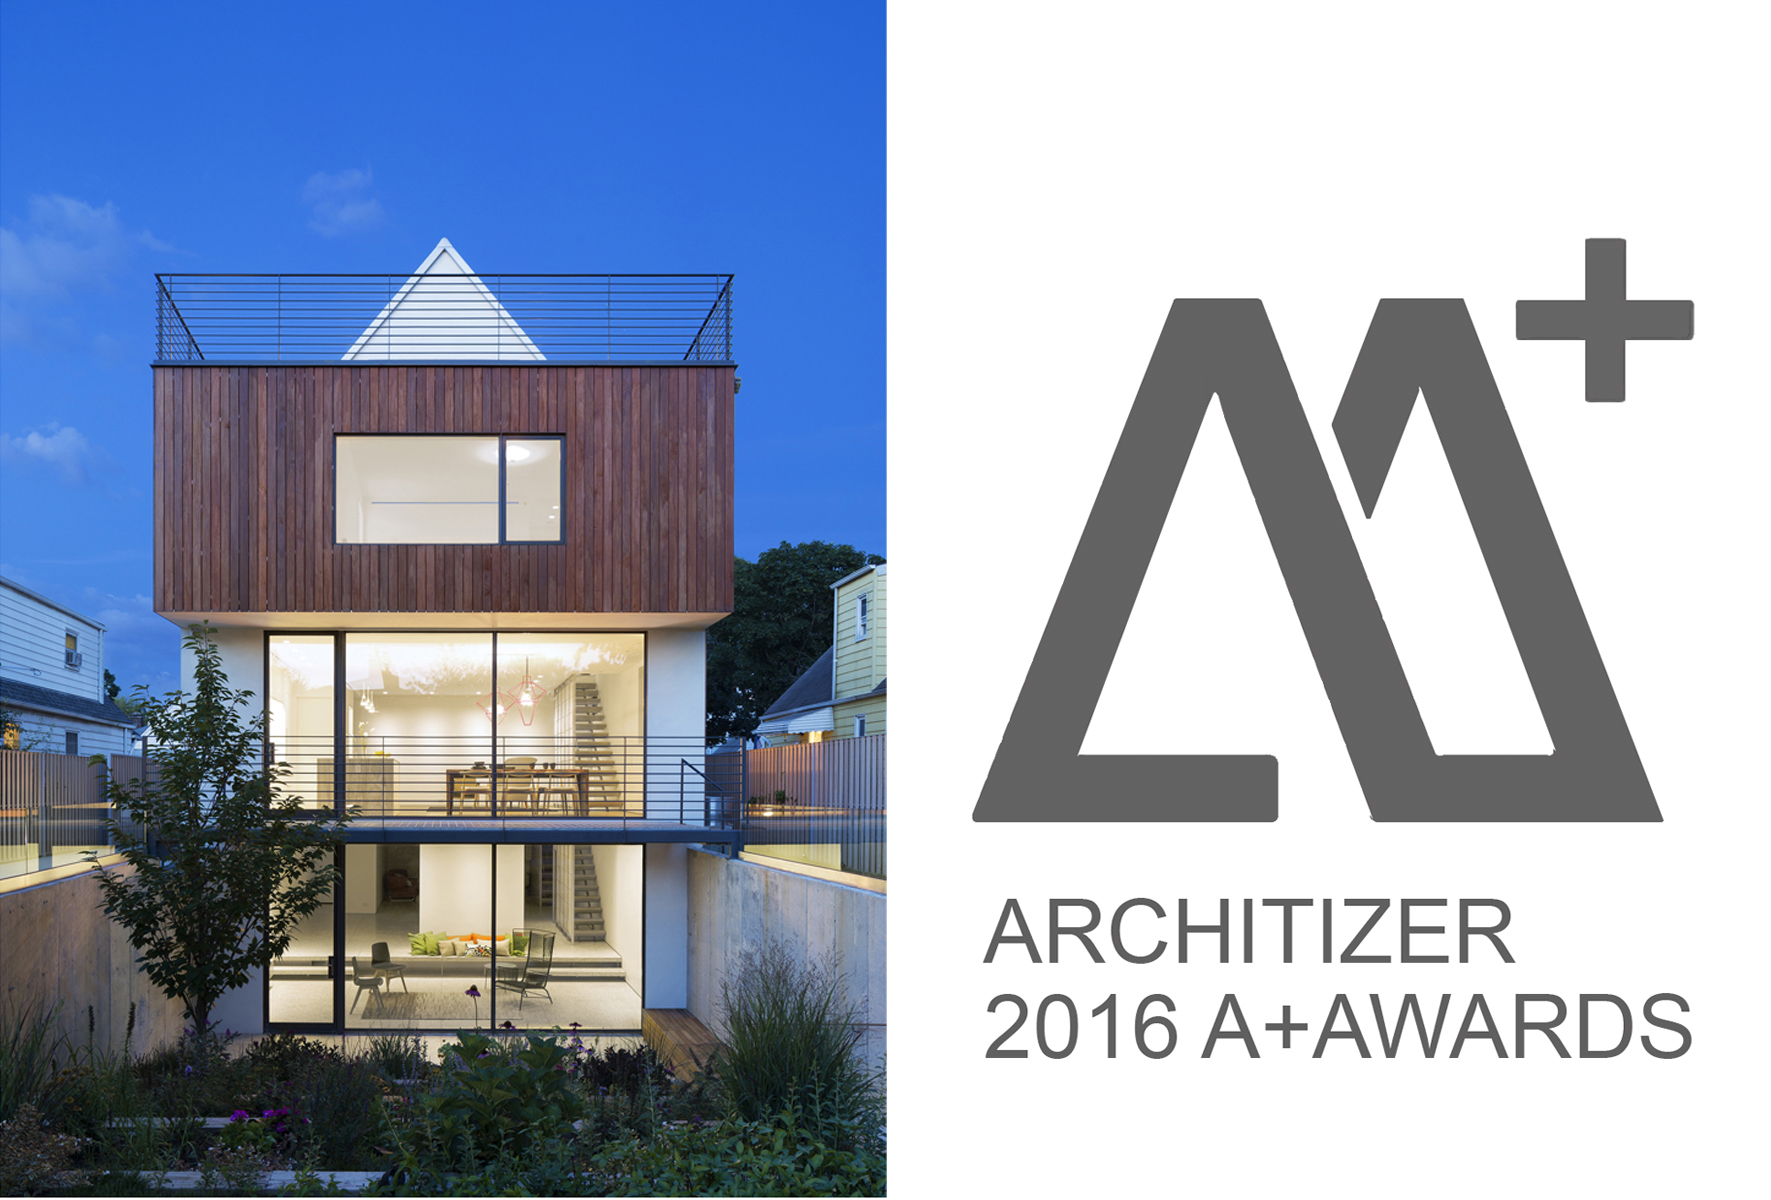 O+RA receives the 2016 Architizer A+Award for Choy House